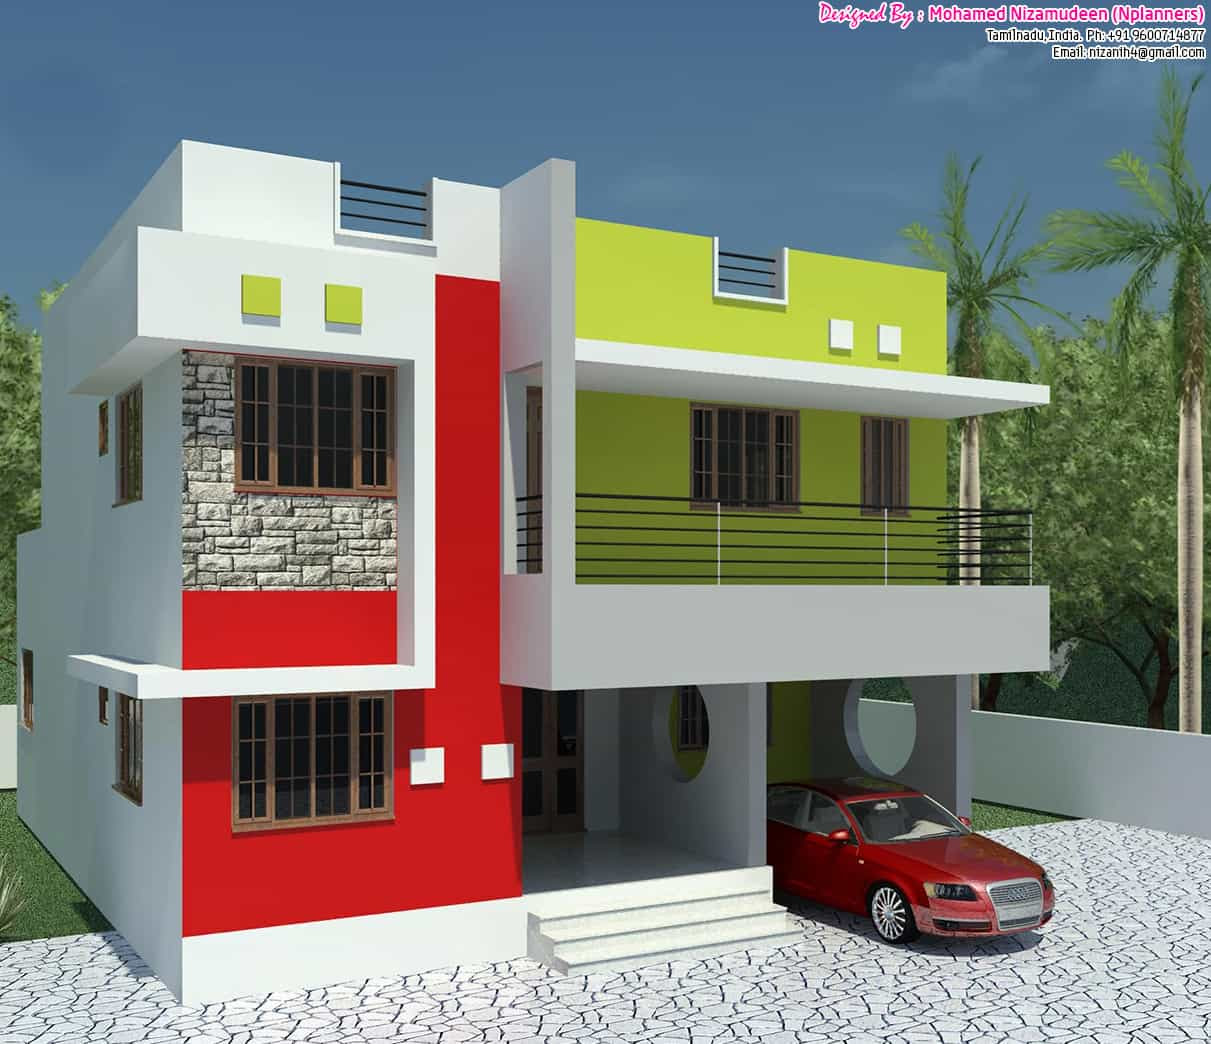 Affordable Basic 3bhk Home Design At 1300 Sq Ft